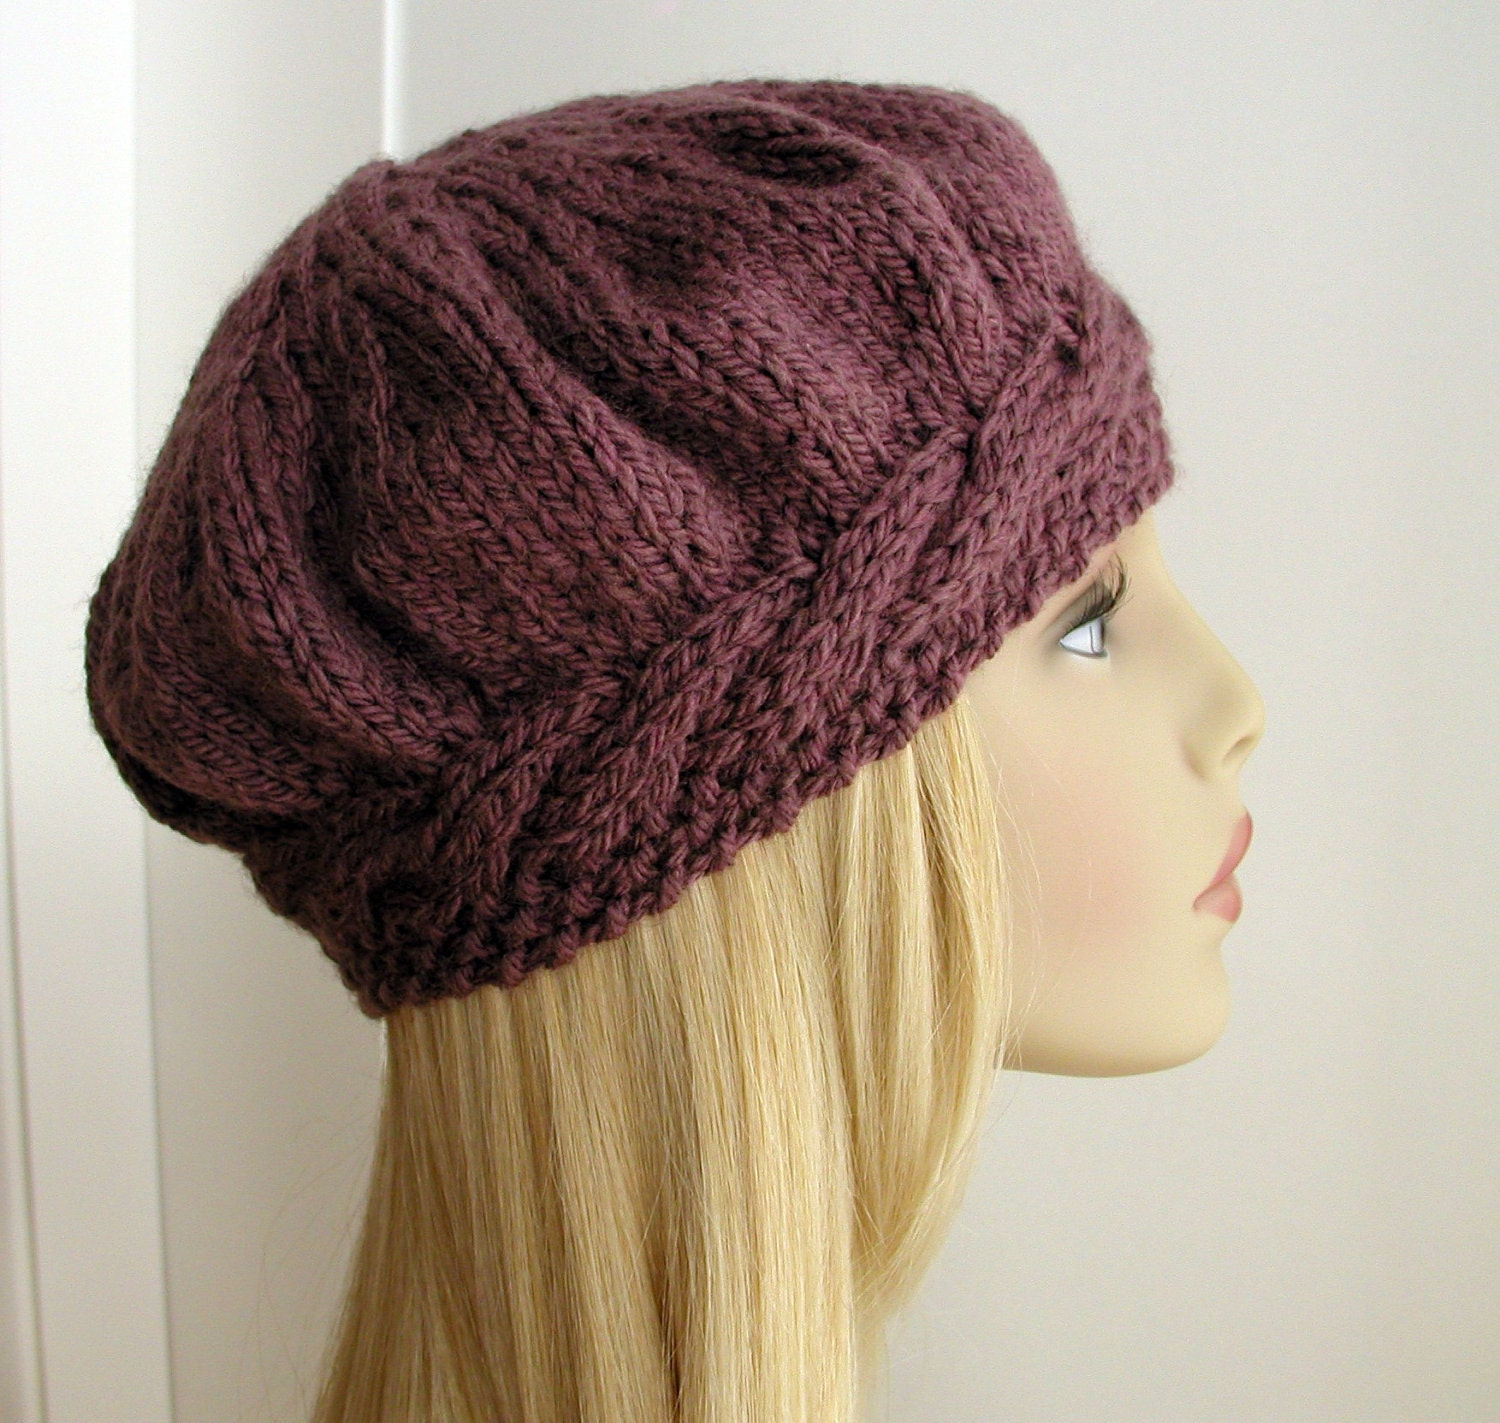 Knitting A Hat In The Round With Double Pointed Needles : Weekend cable beret tam hat knitting pattern